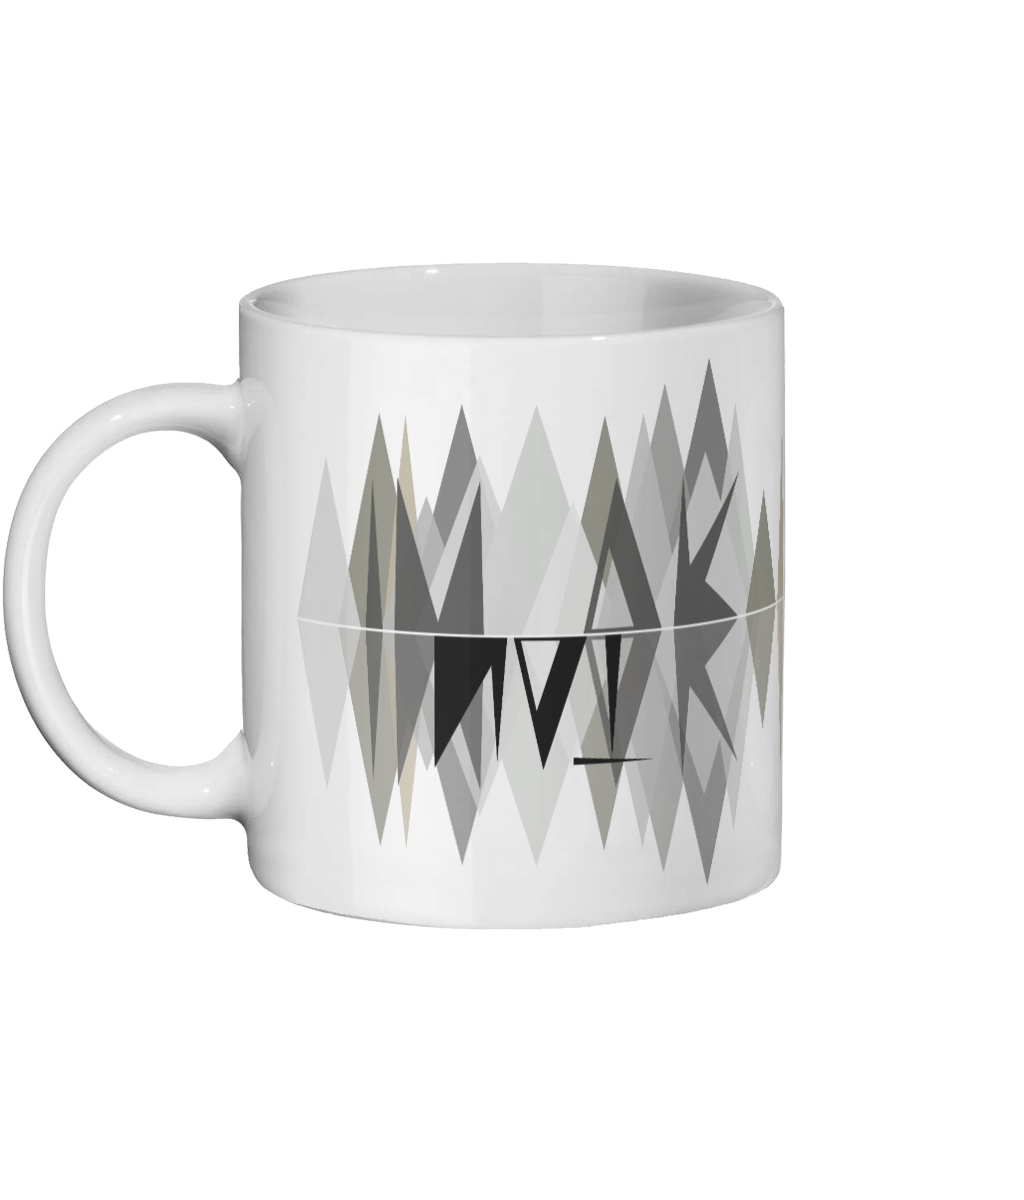 I'm Not Okay Ceramic Mug